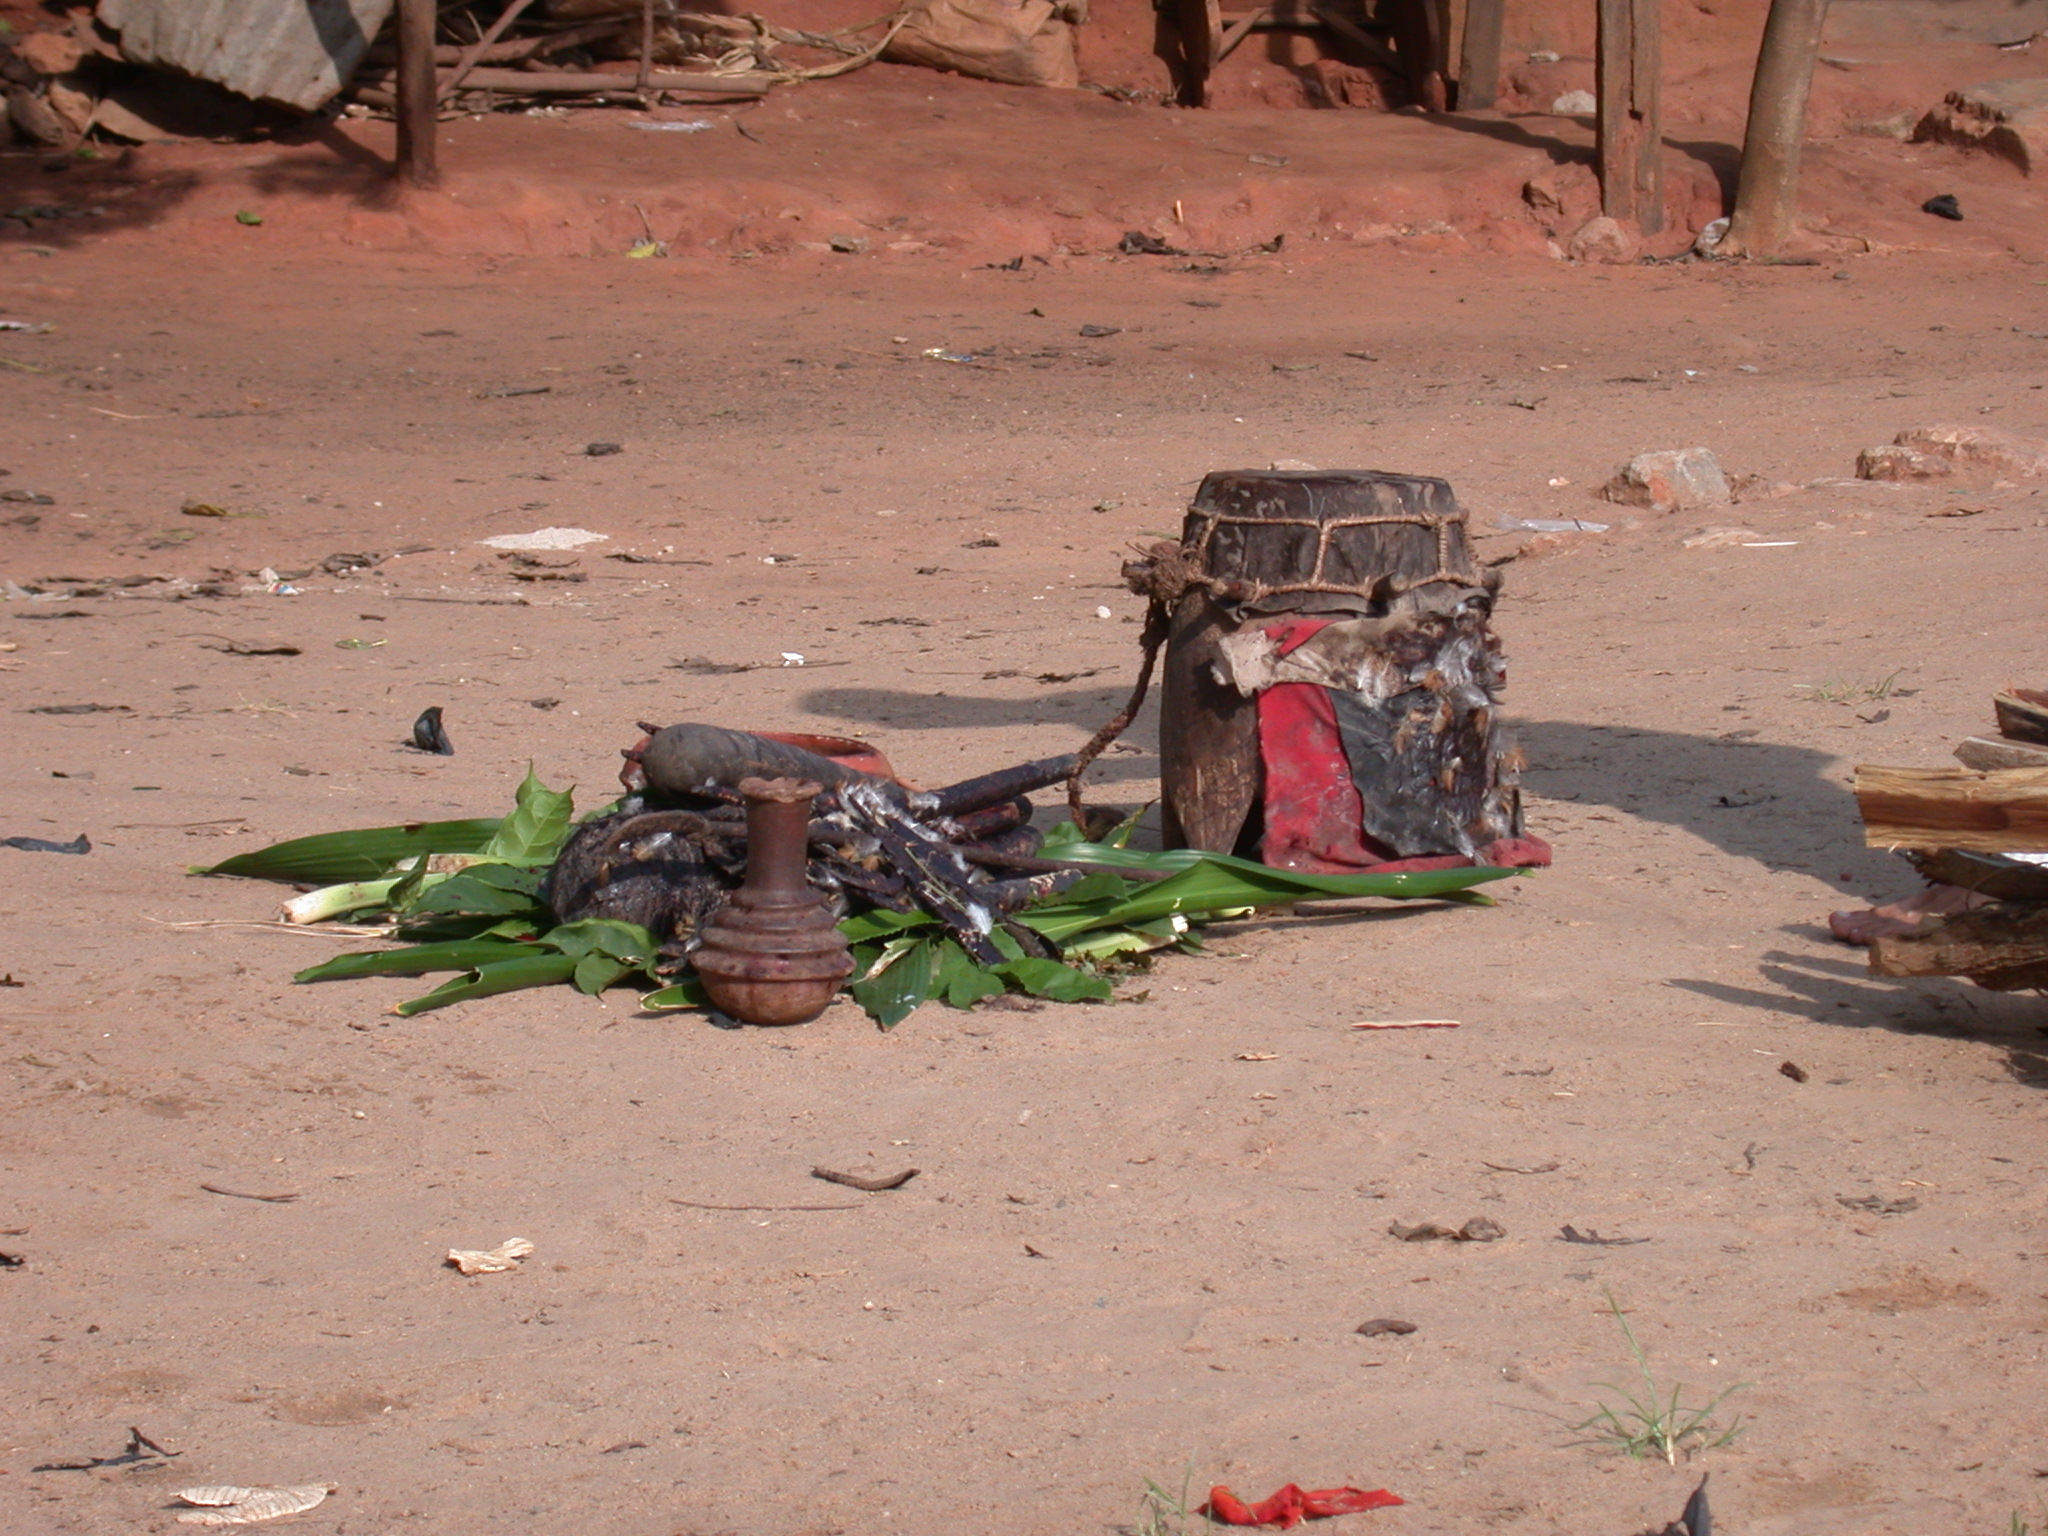 Preparations for Vodun Ritual, Ouidah, Benin